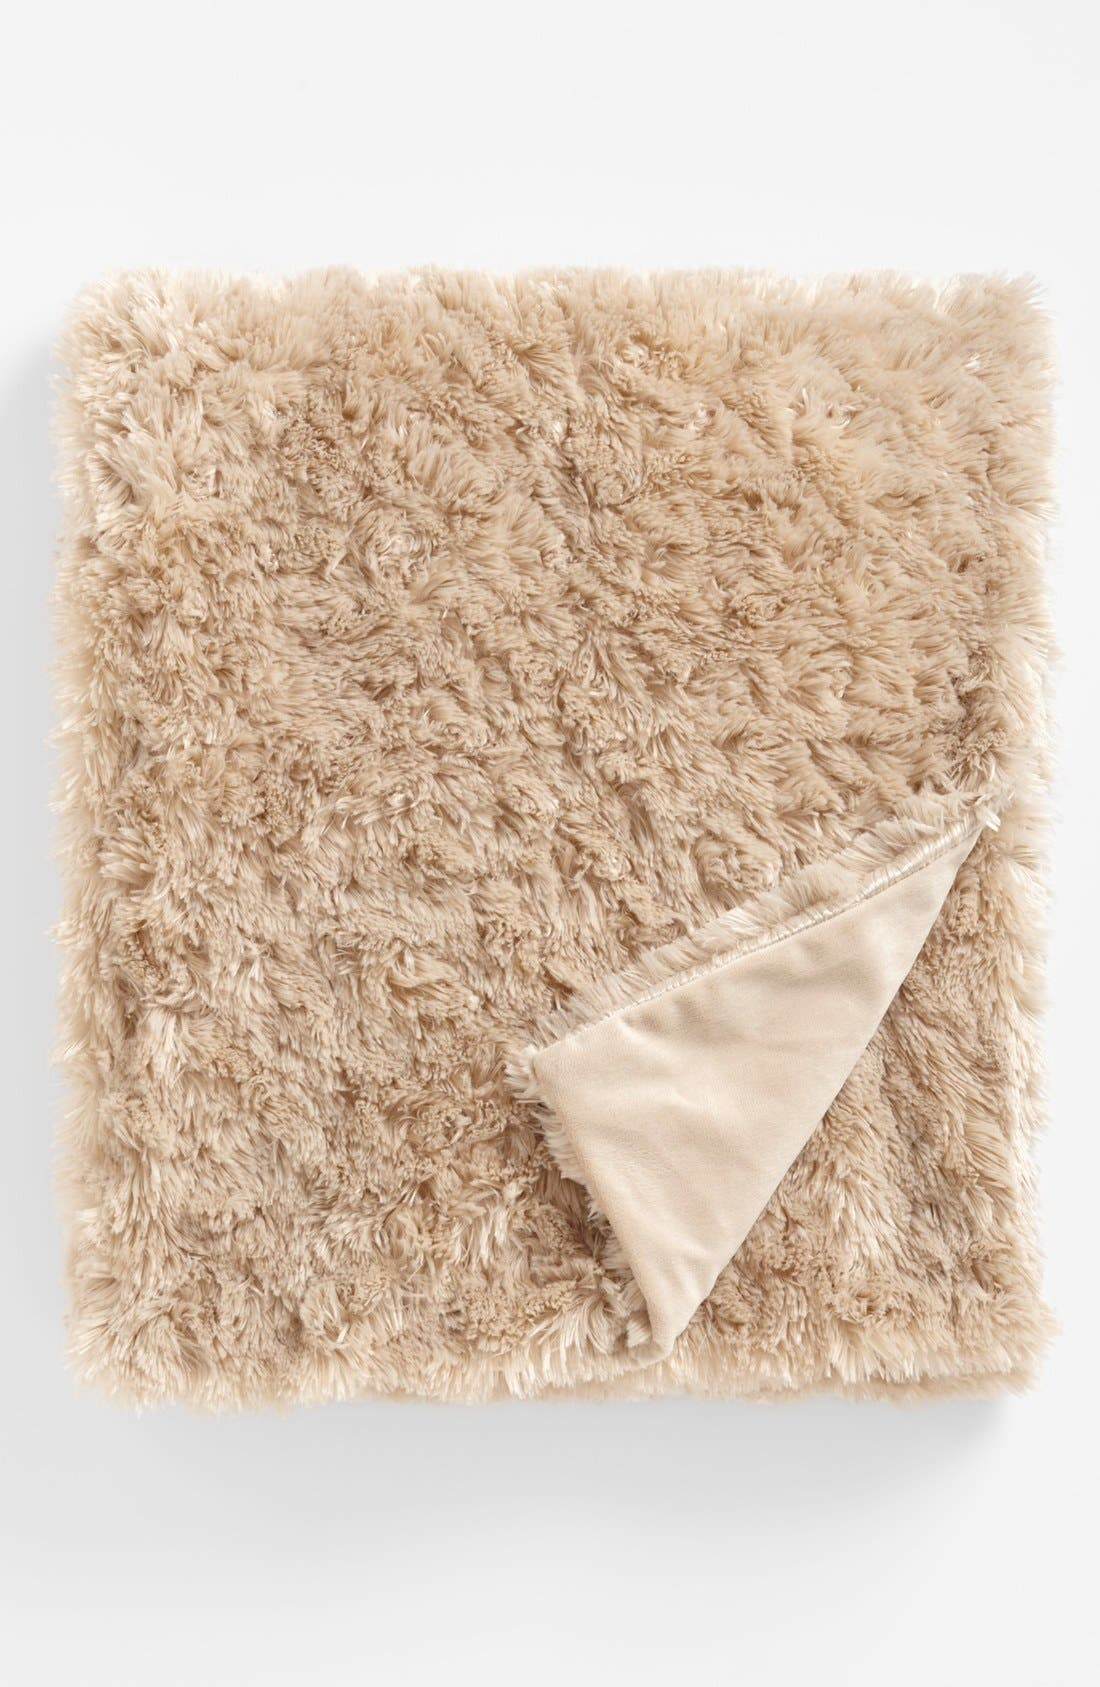 Alternate Image 1 Selected - Nordstrom at Home 'Shaggy' Plush Throw Blanket